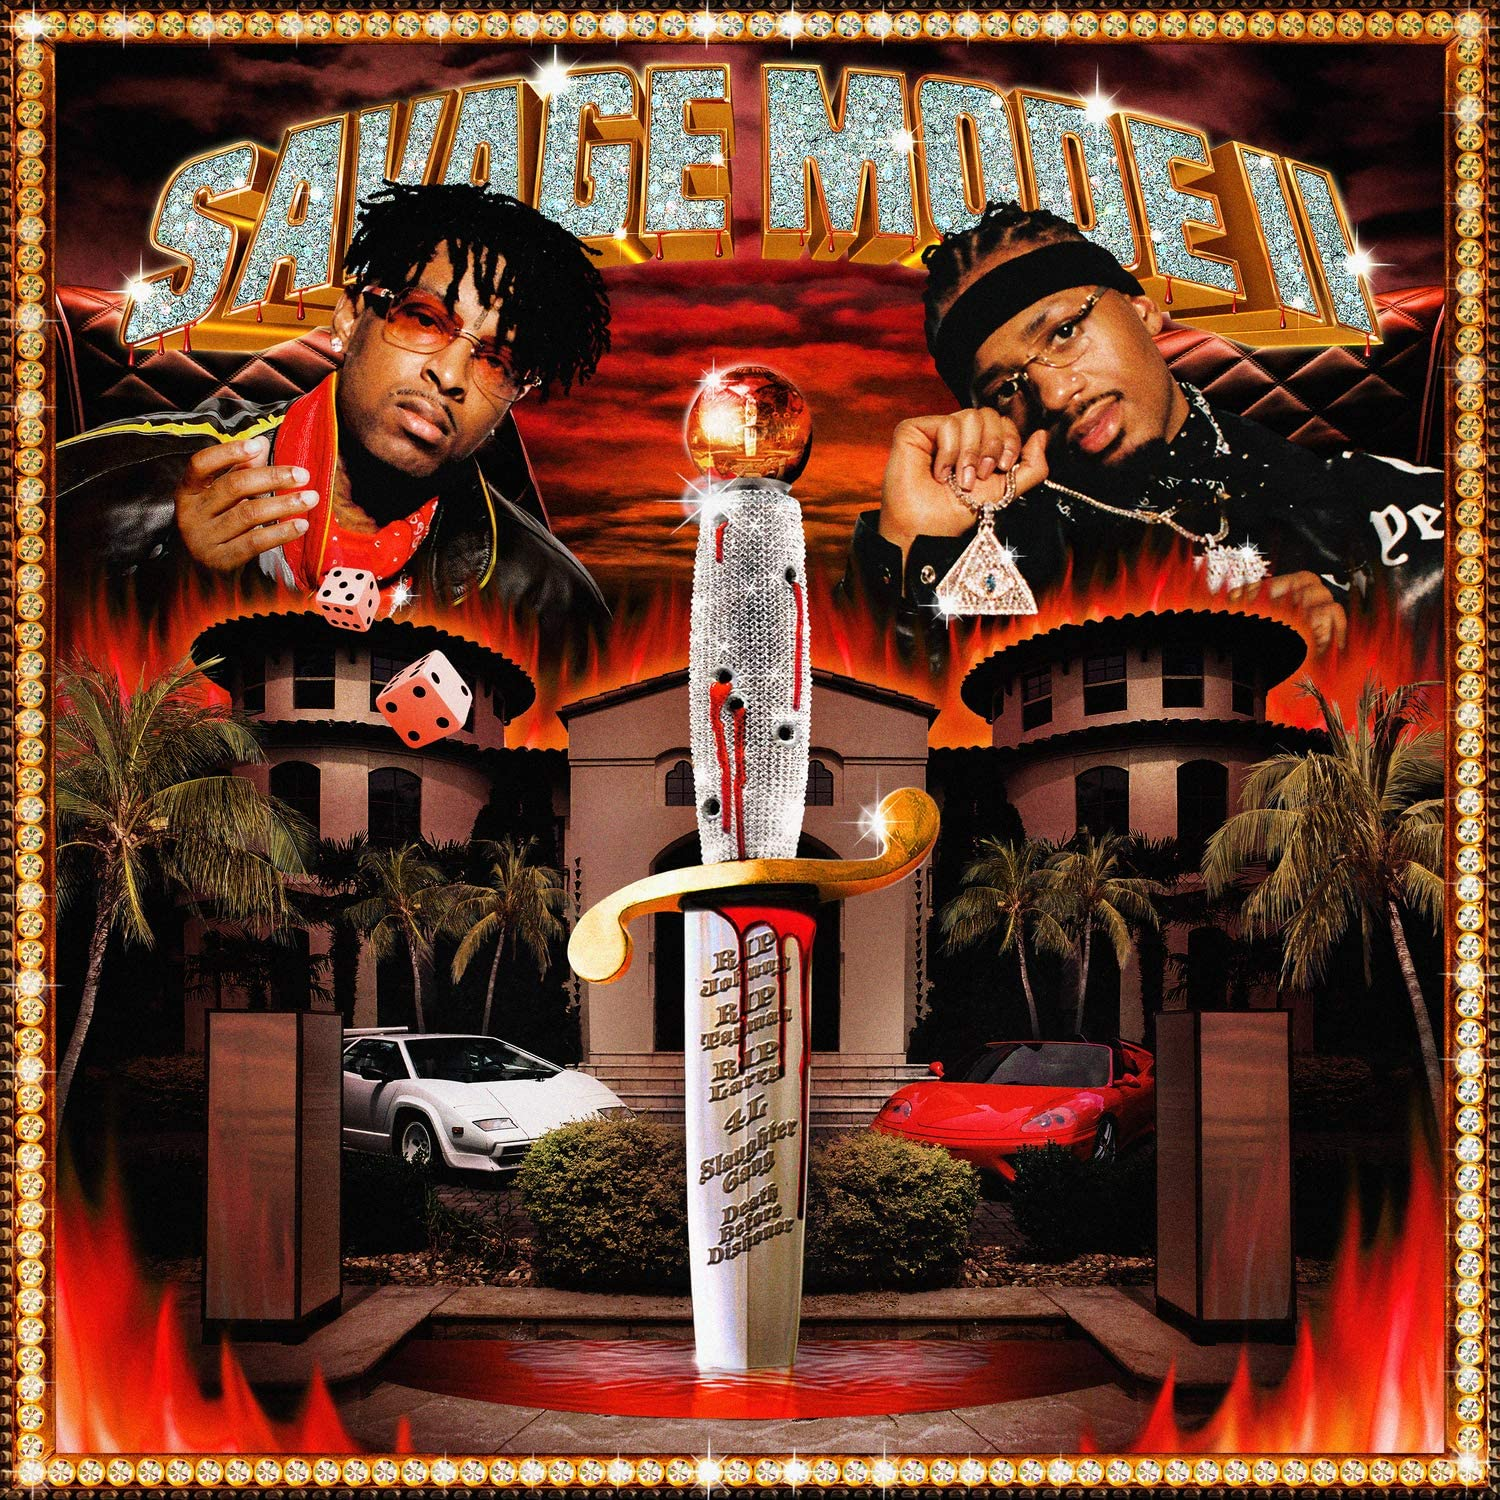 21 Savage & Metro Boomin - Savage Mode II [LP]